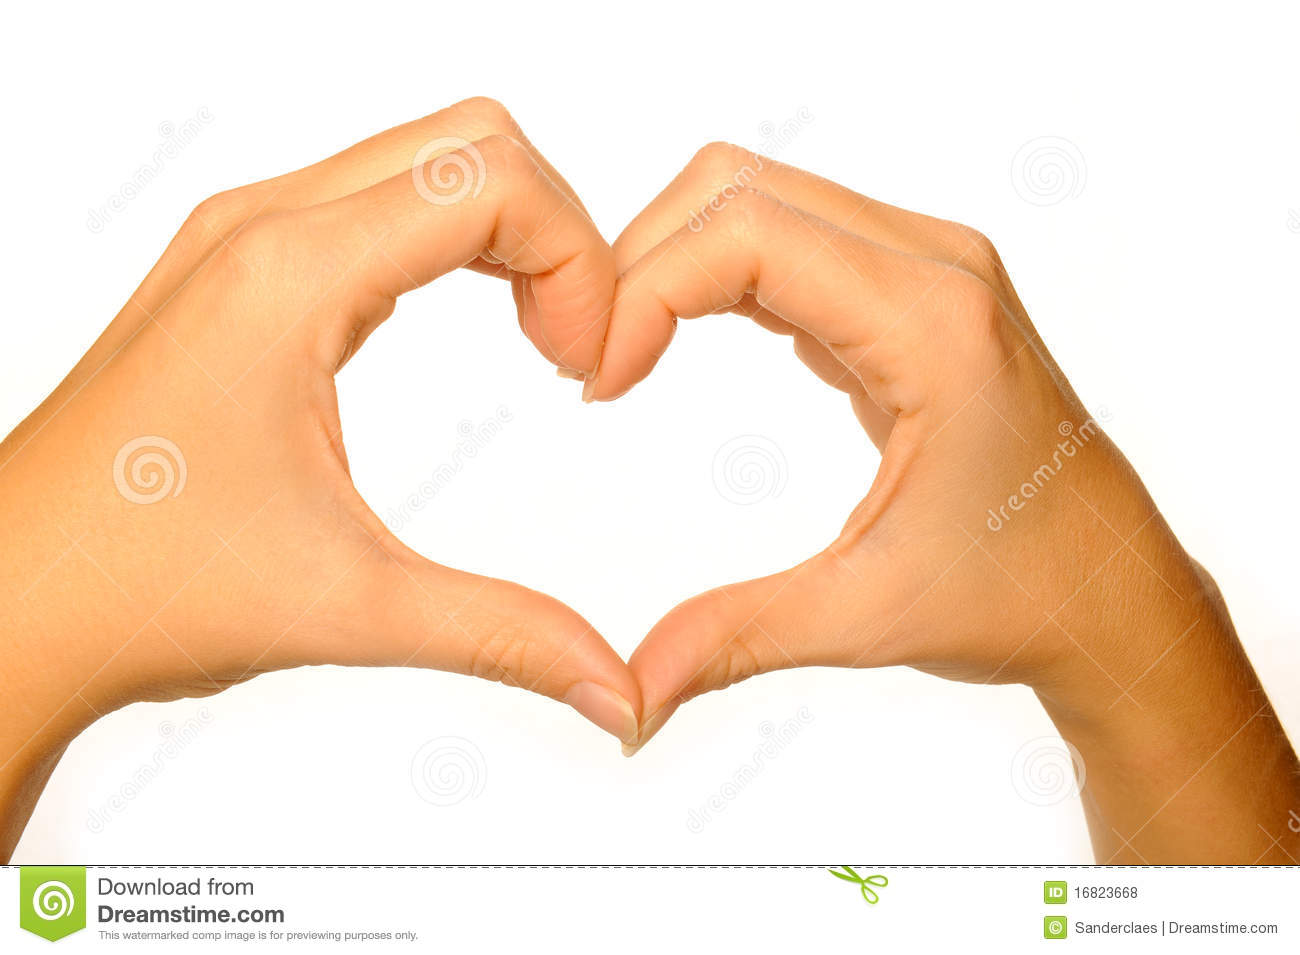 Human hand heart stock photo. Image of creative, finger ...